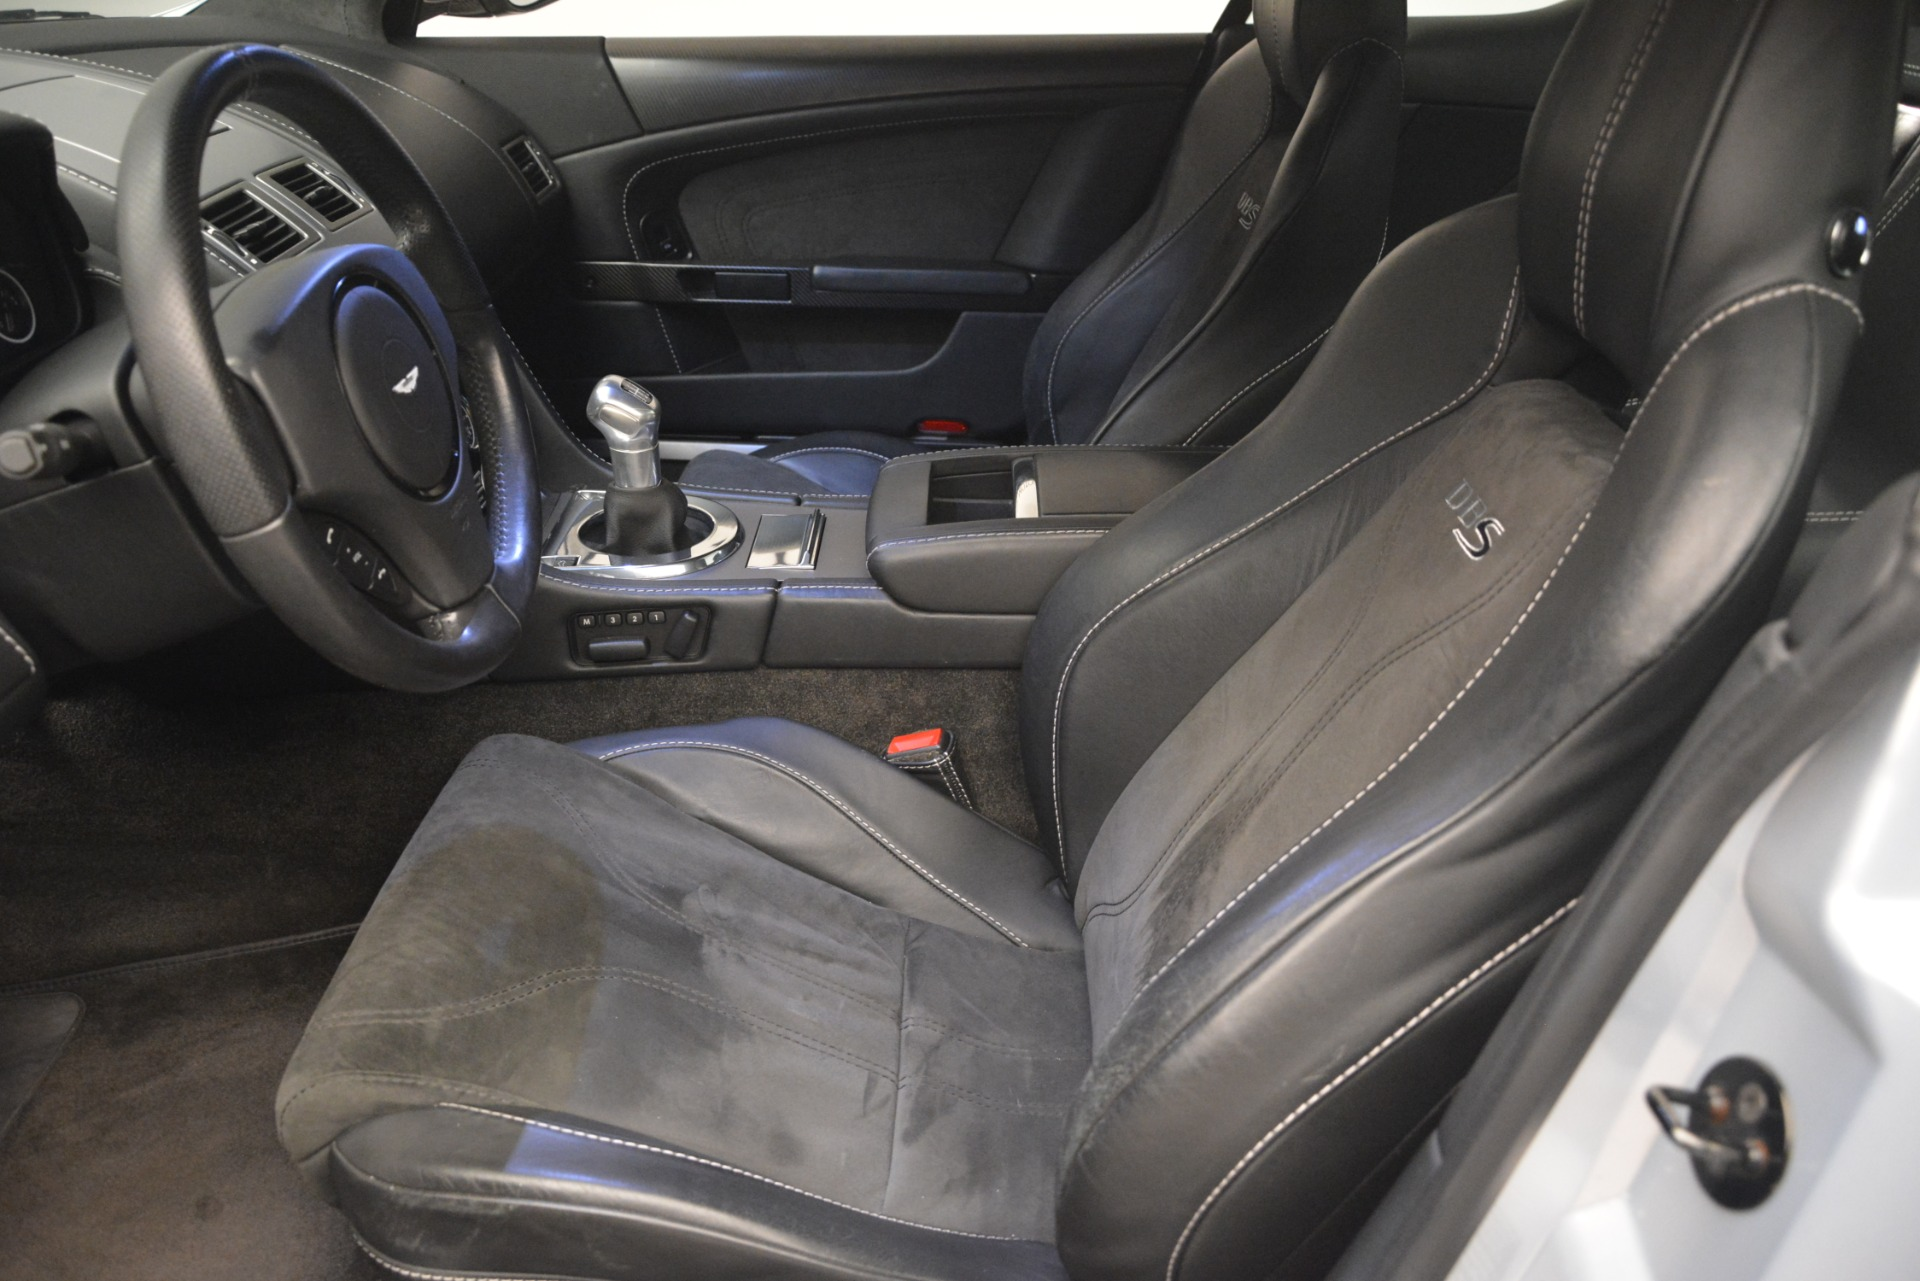 Used 2009 Aston Martin DBS Coupe For Sale In Greenwich, CT 3033_p19